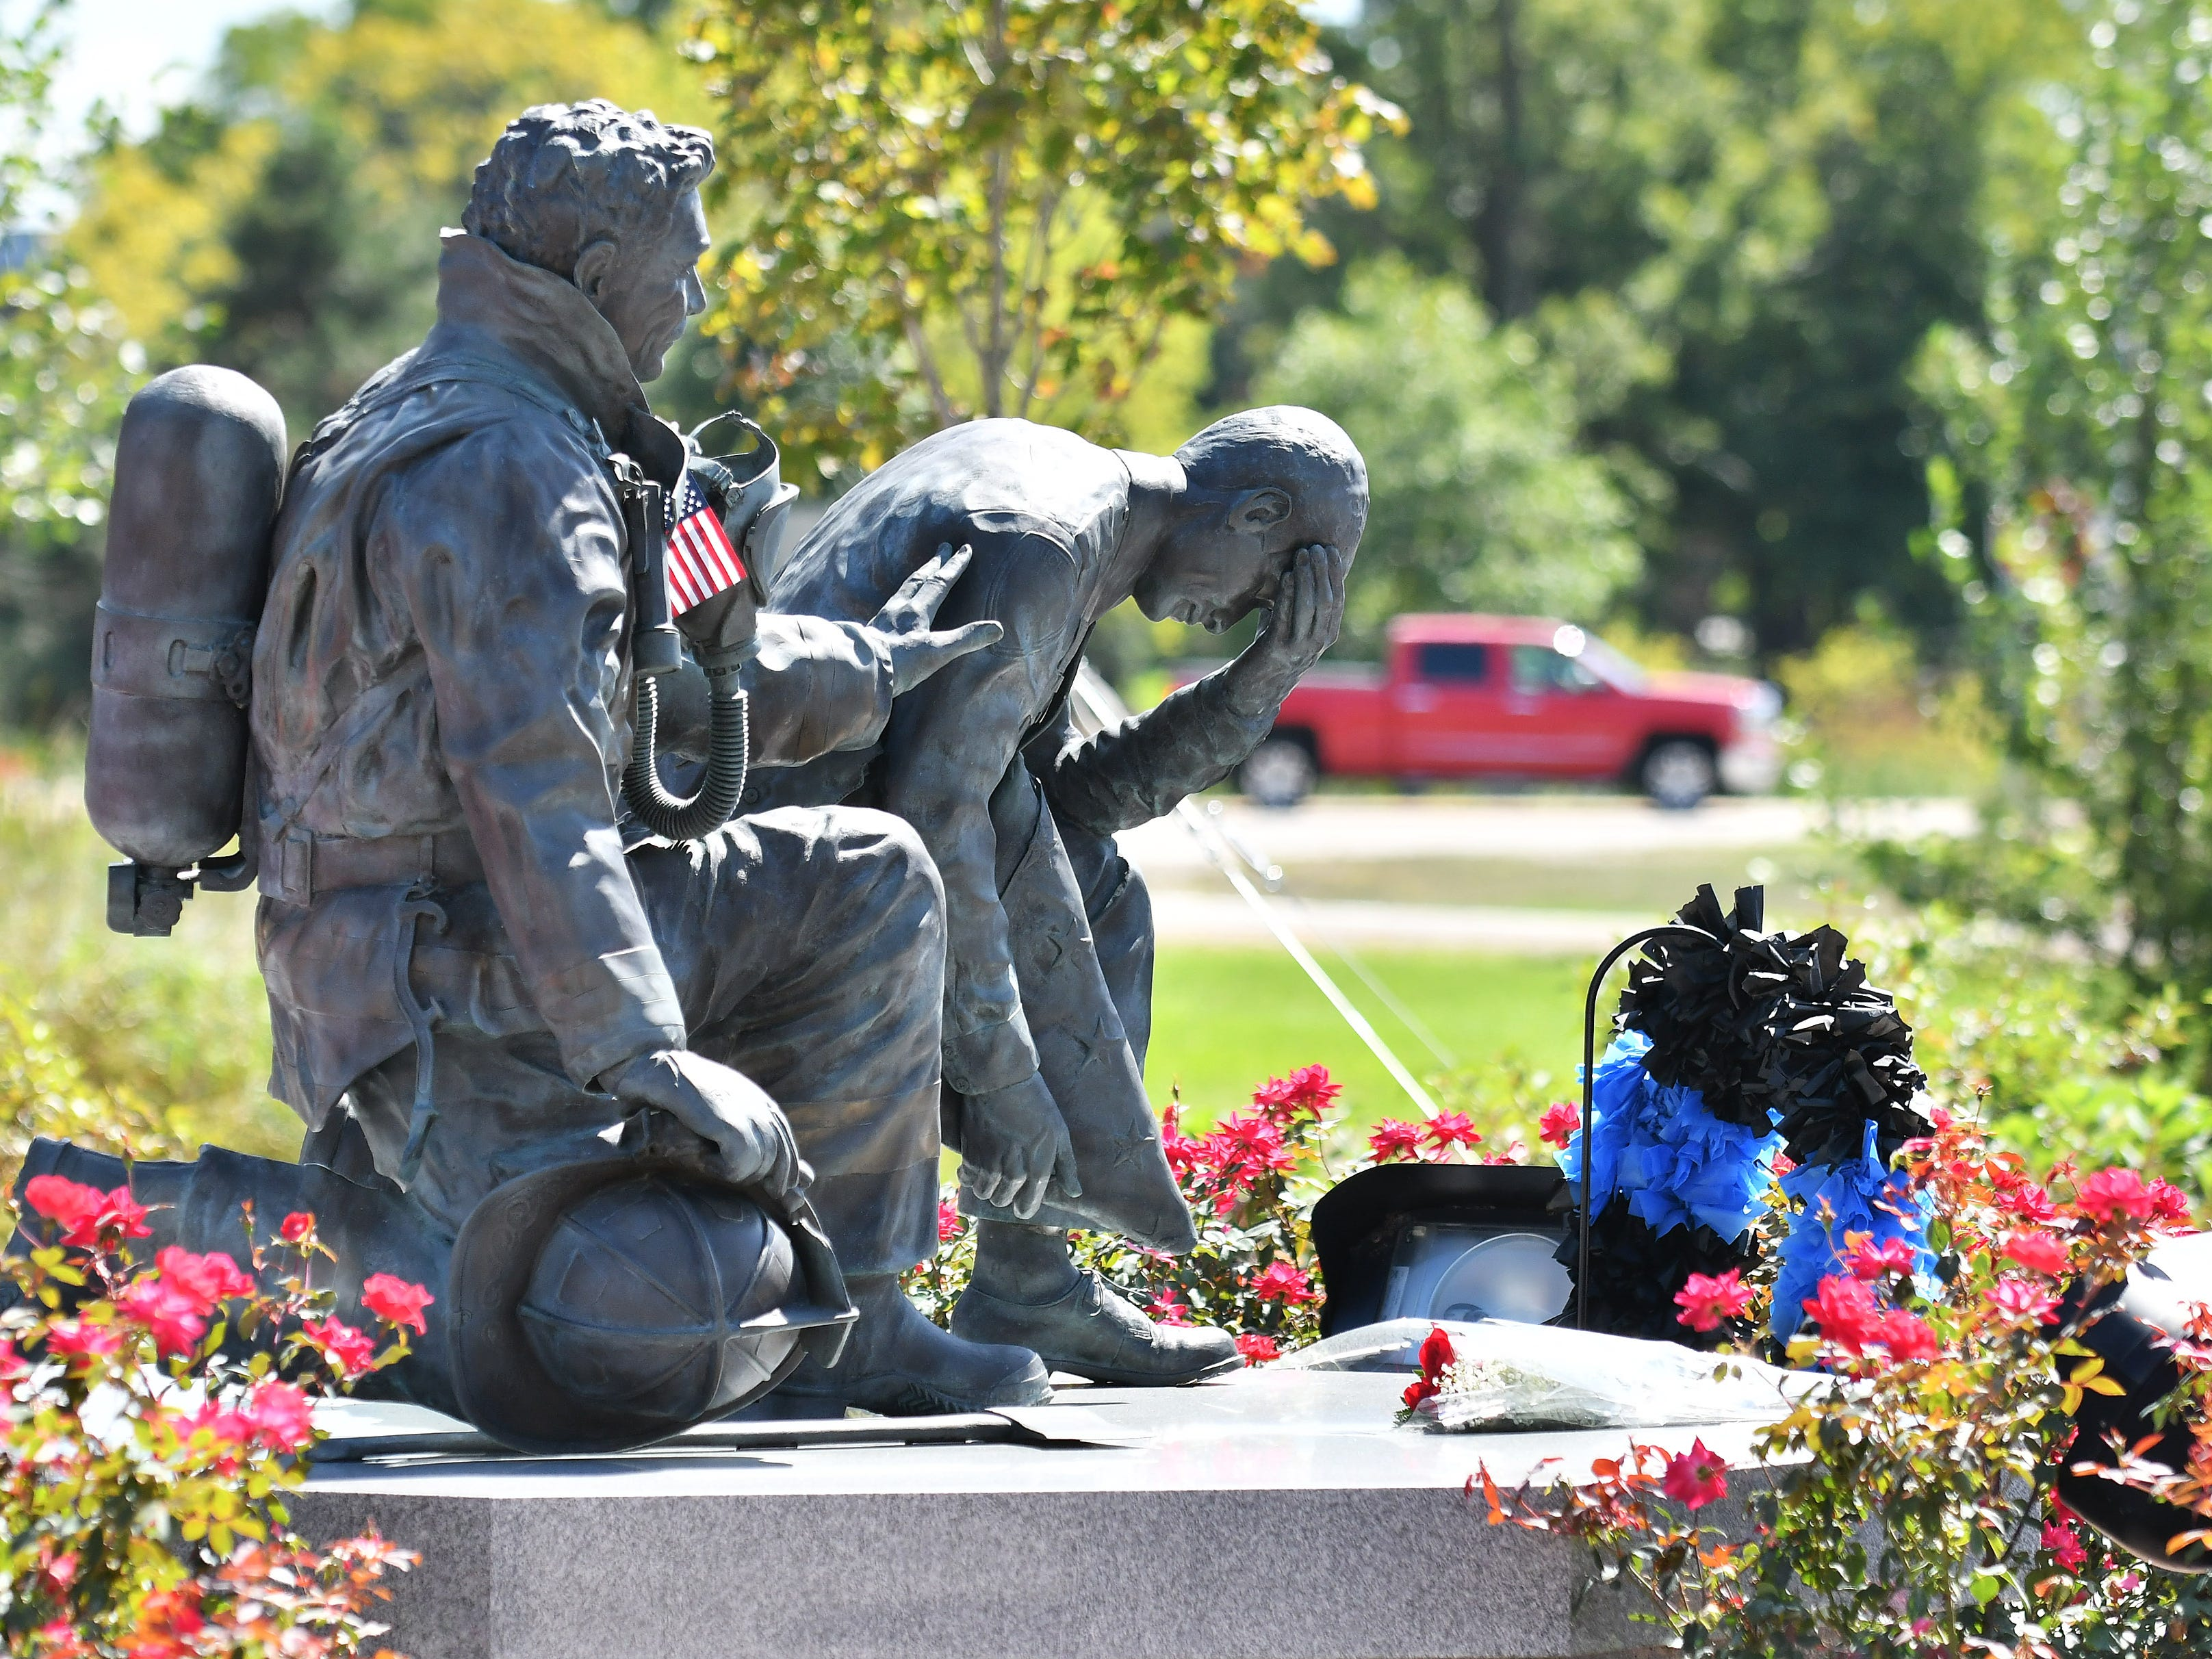 The sculpture at the Michigan Fallen Heroes Memorial.